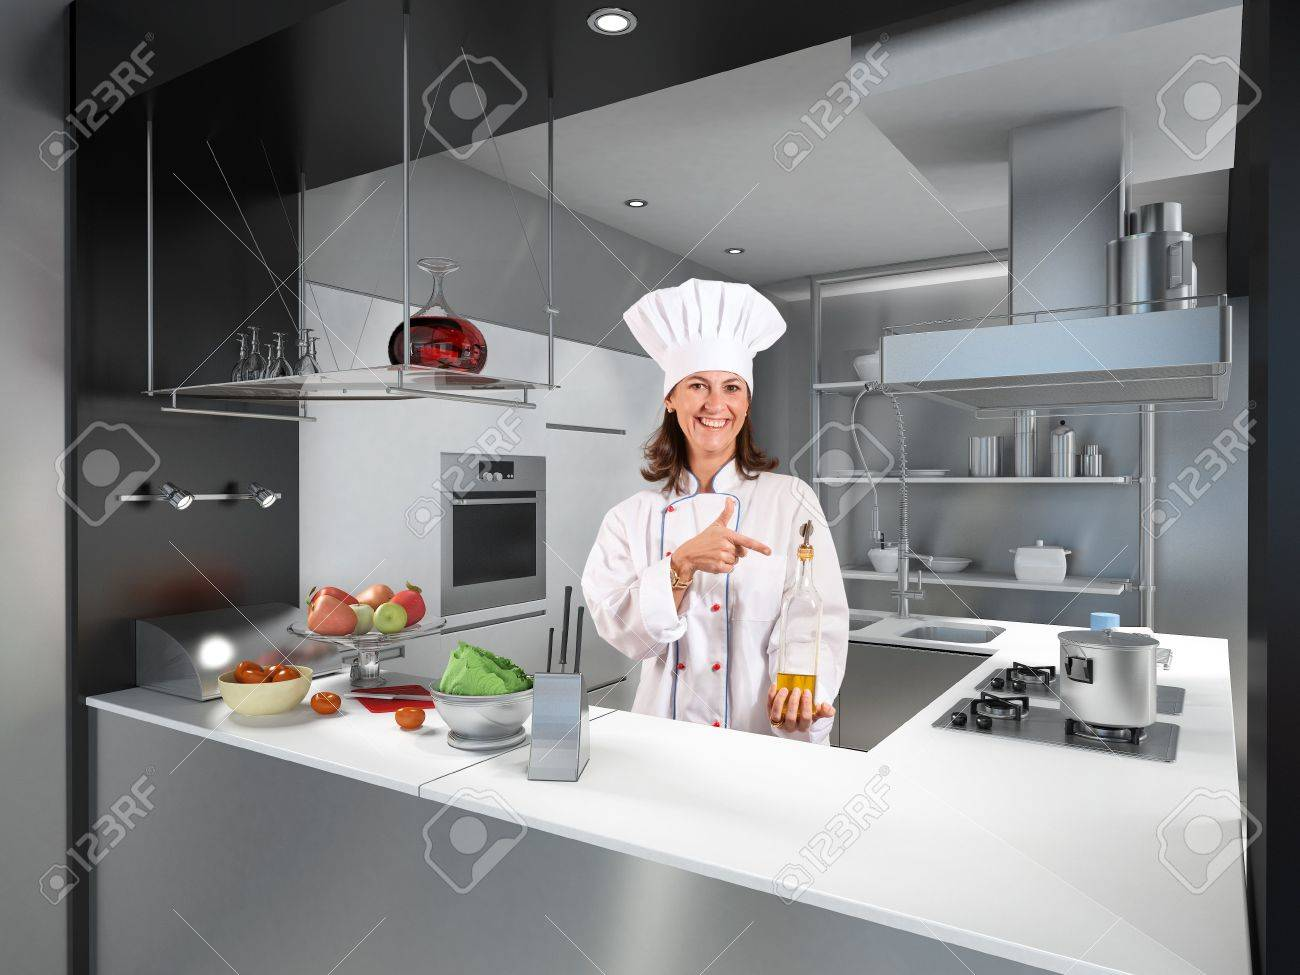 Restaurant Kitchen Counter smiling female chef behind a modern kitchen counter pointing